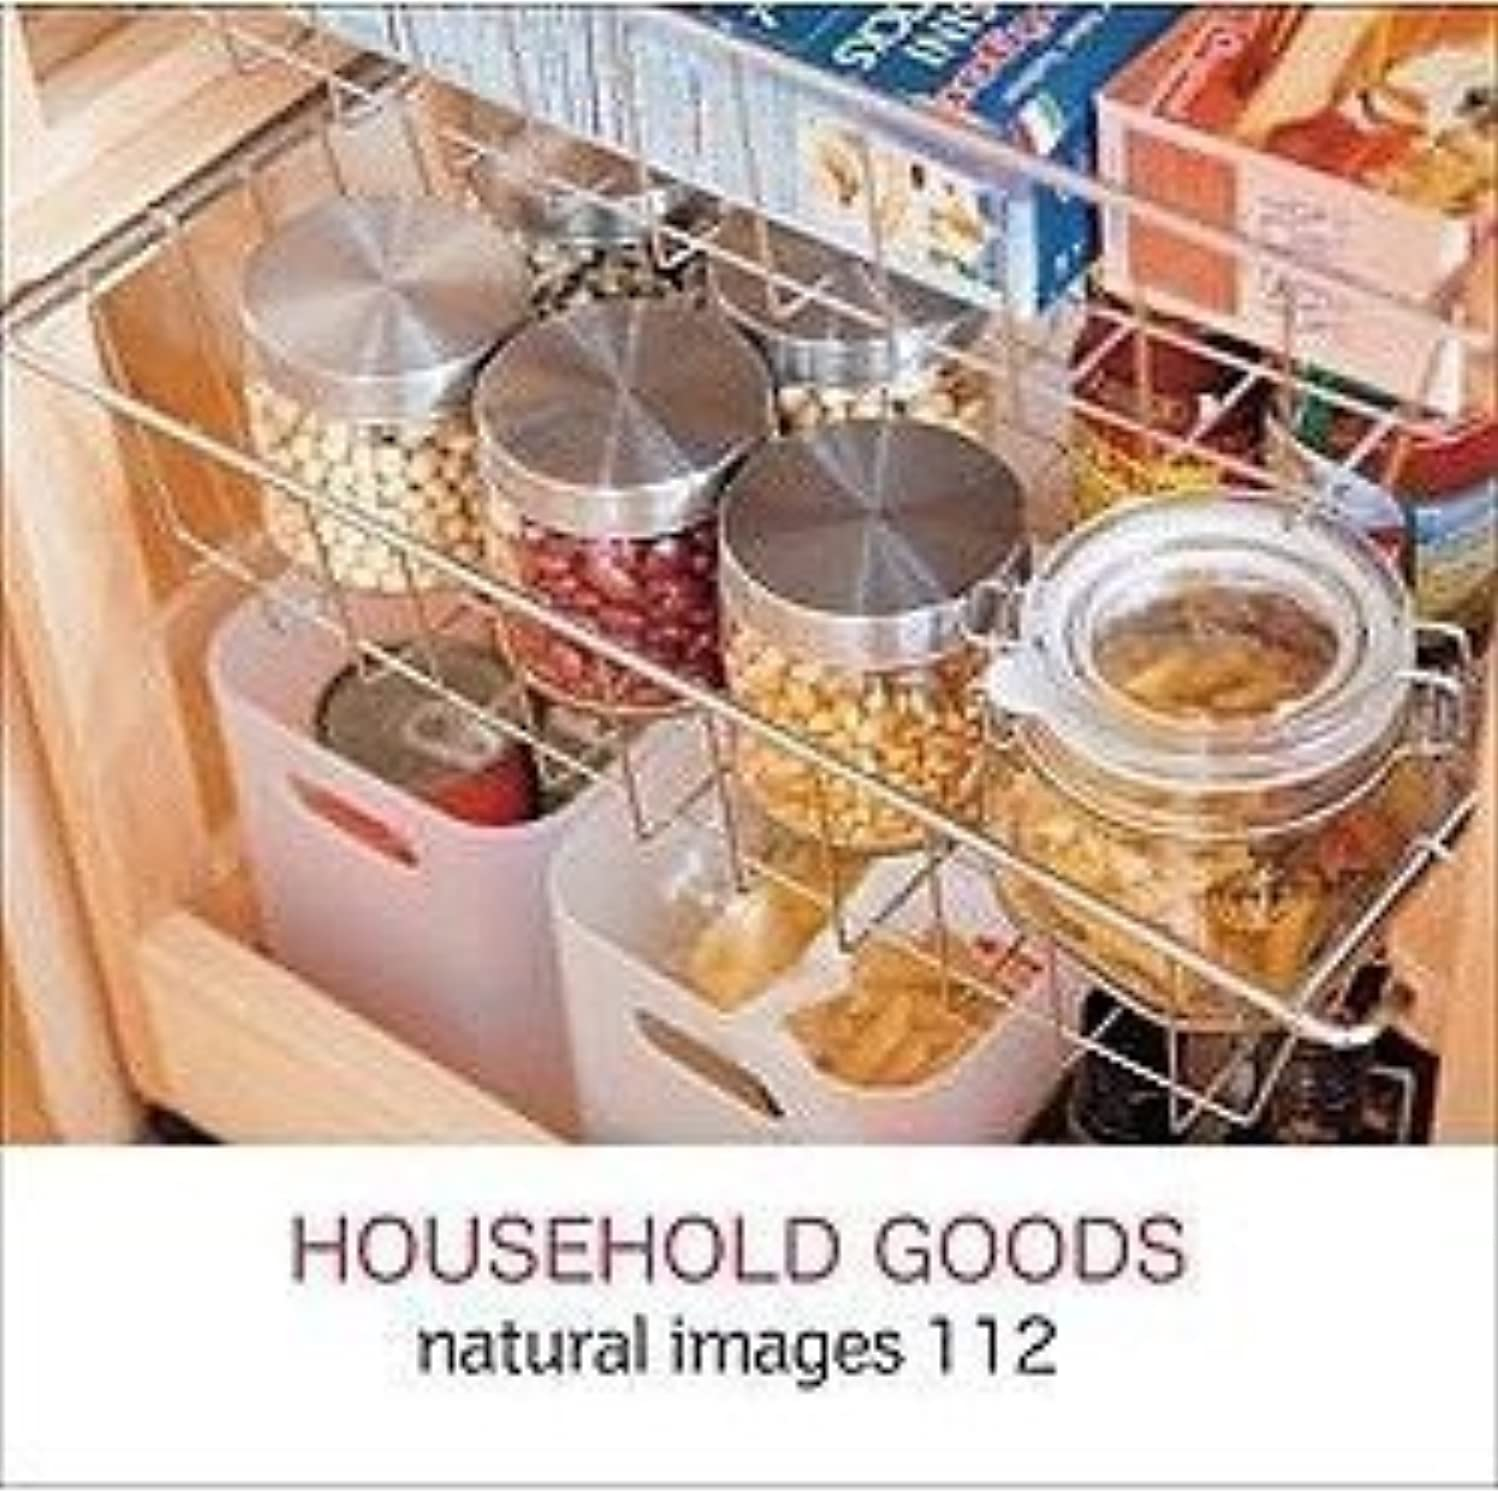 naturalimages Vol.112 HOUSEHOLD GOODS